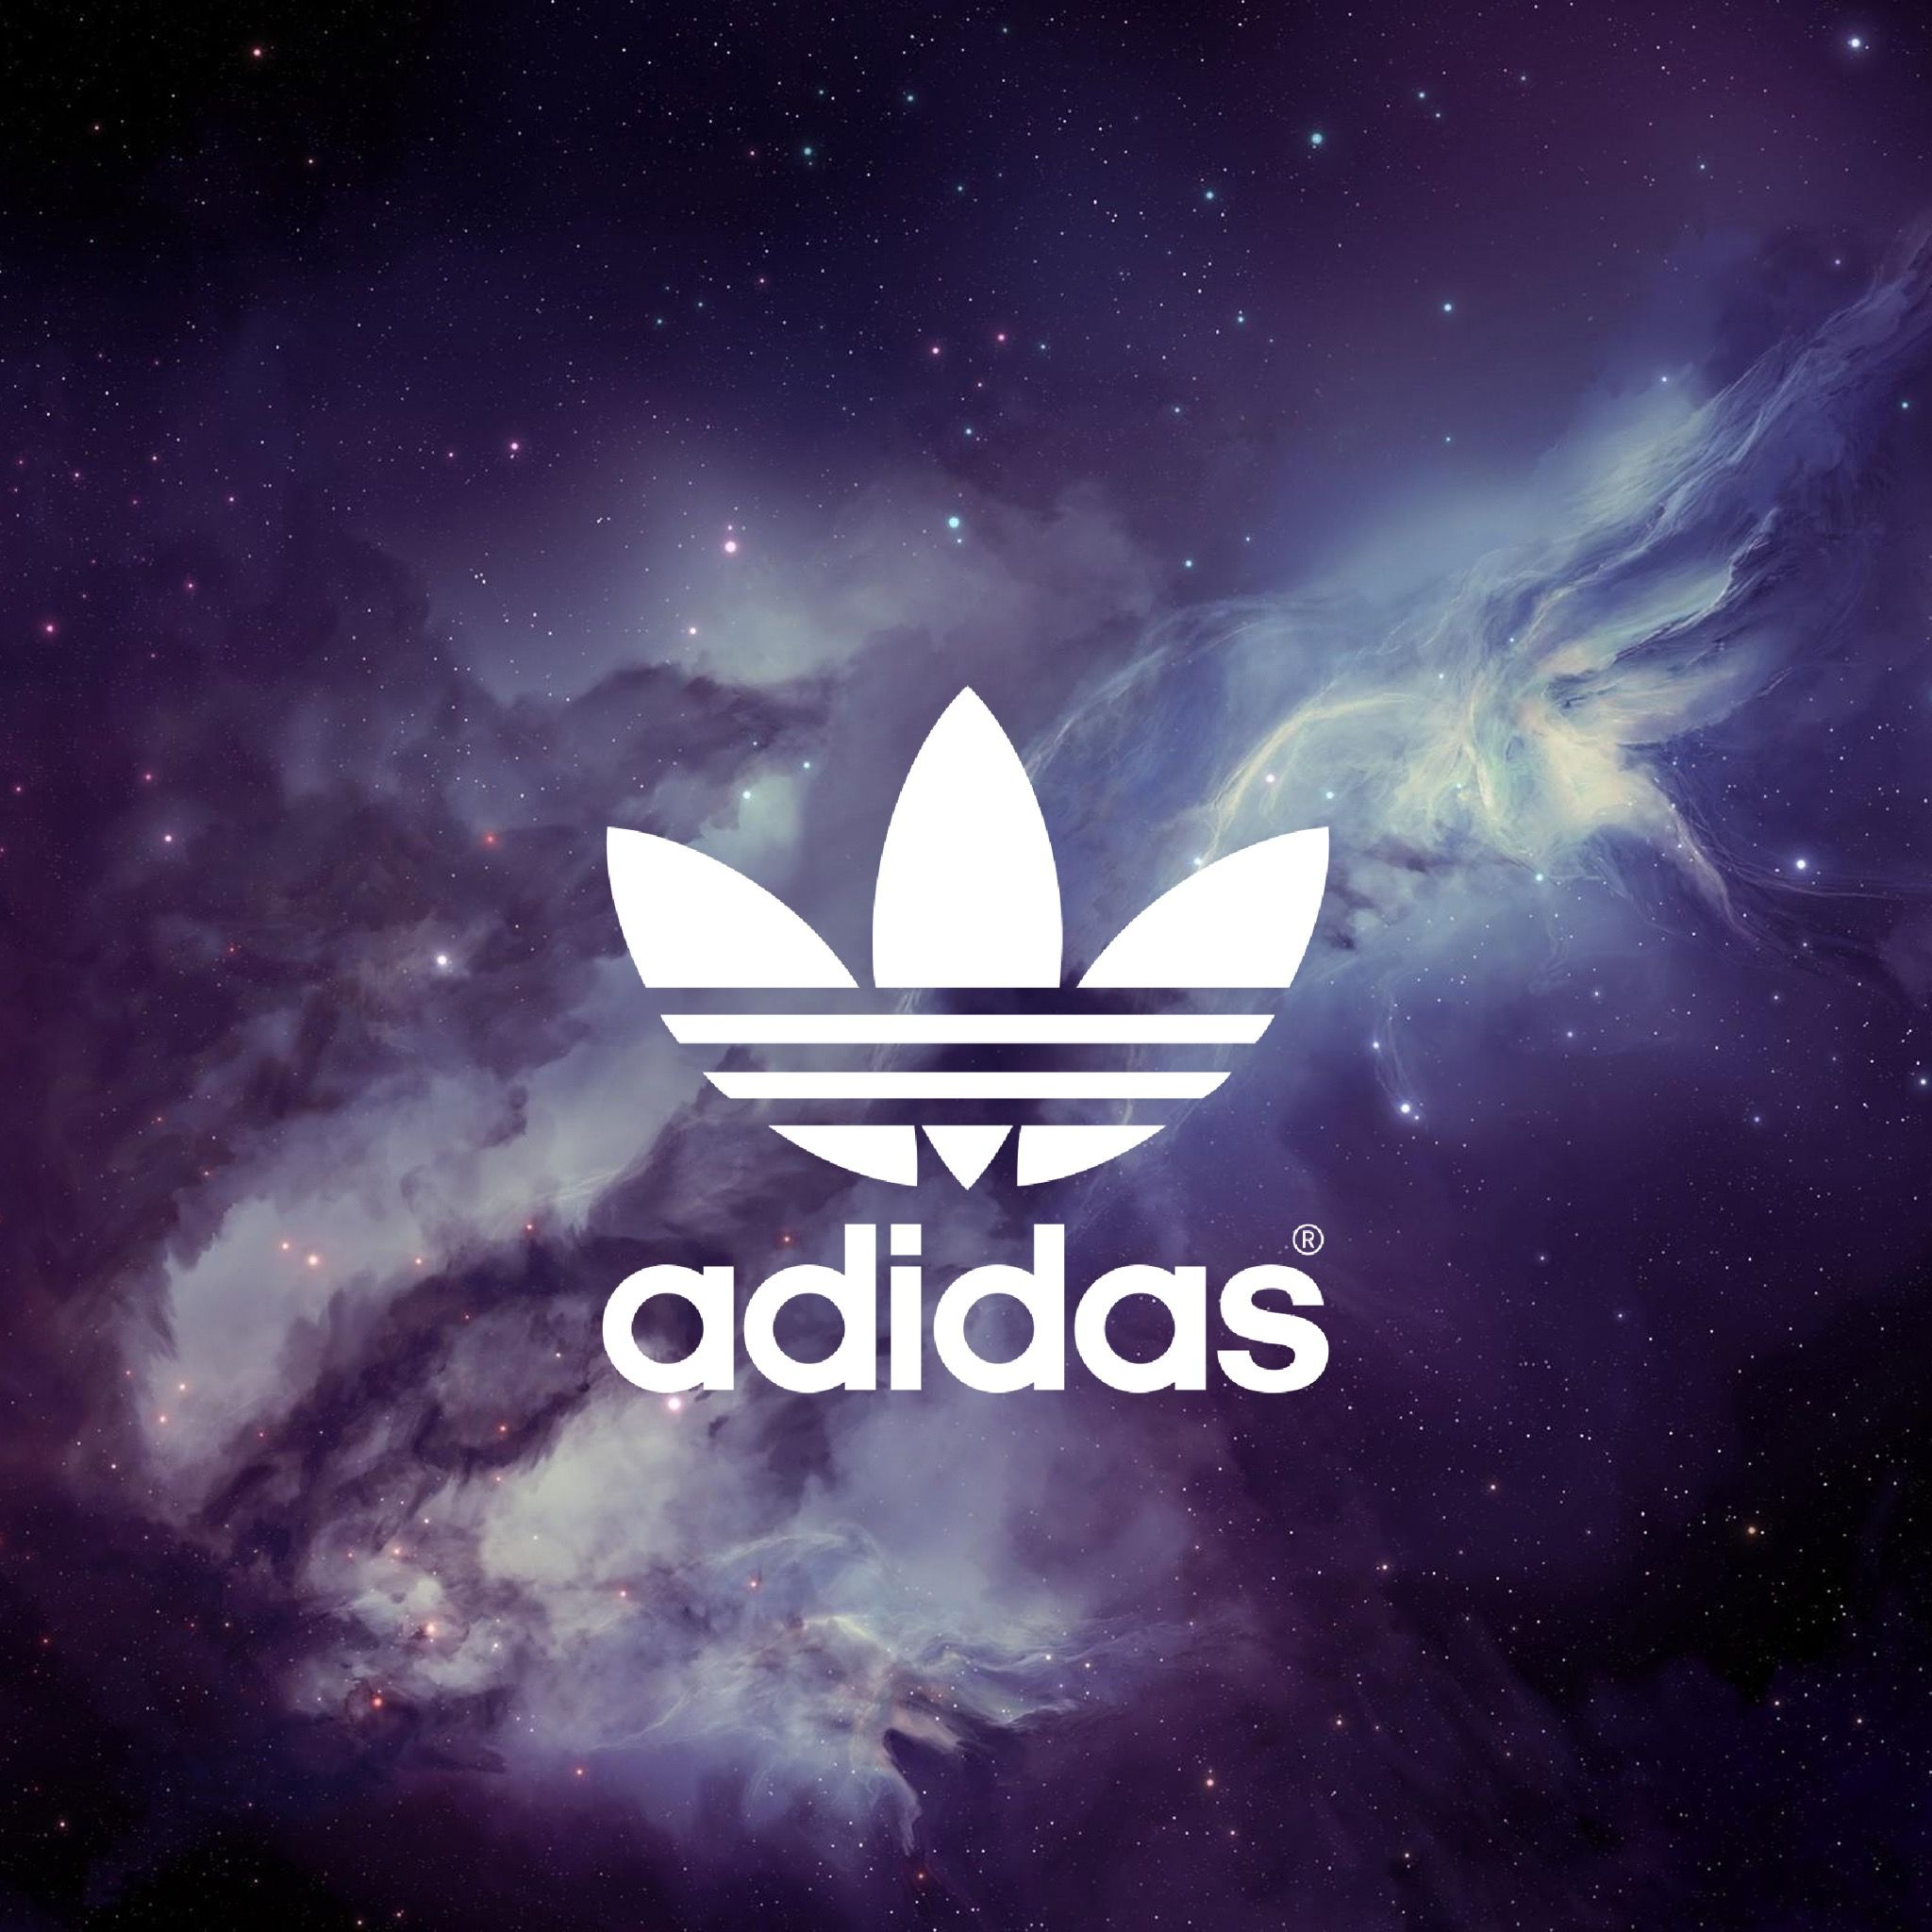 Adidas Galaxy Wallpaper Adidas wallpapers, Adidas logo